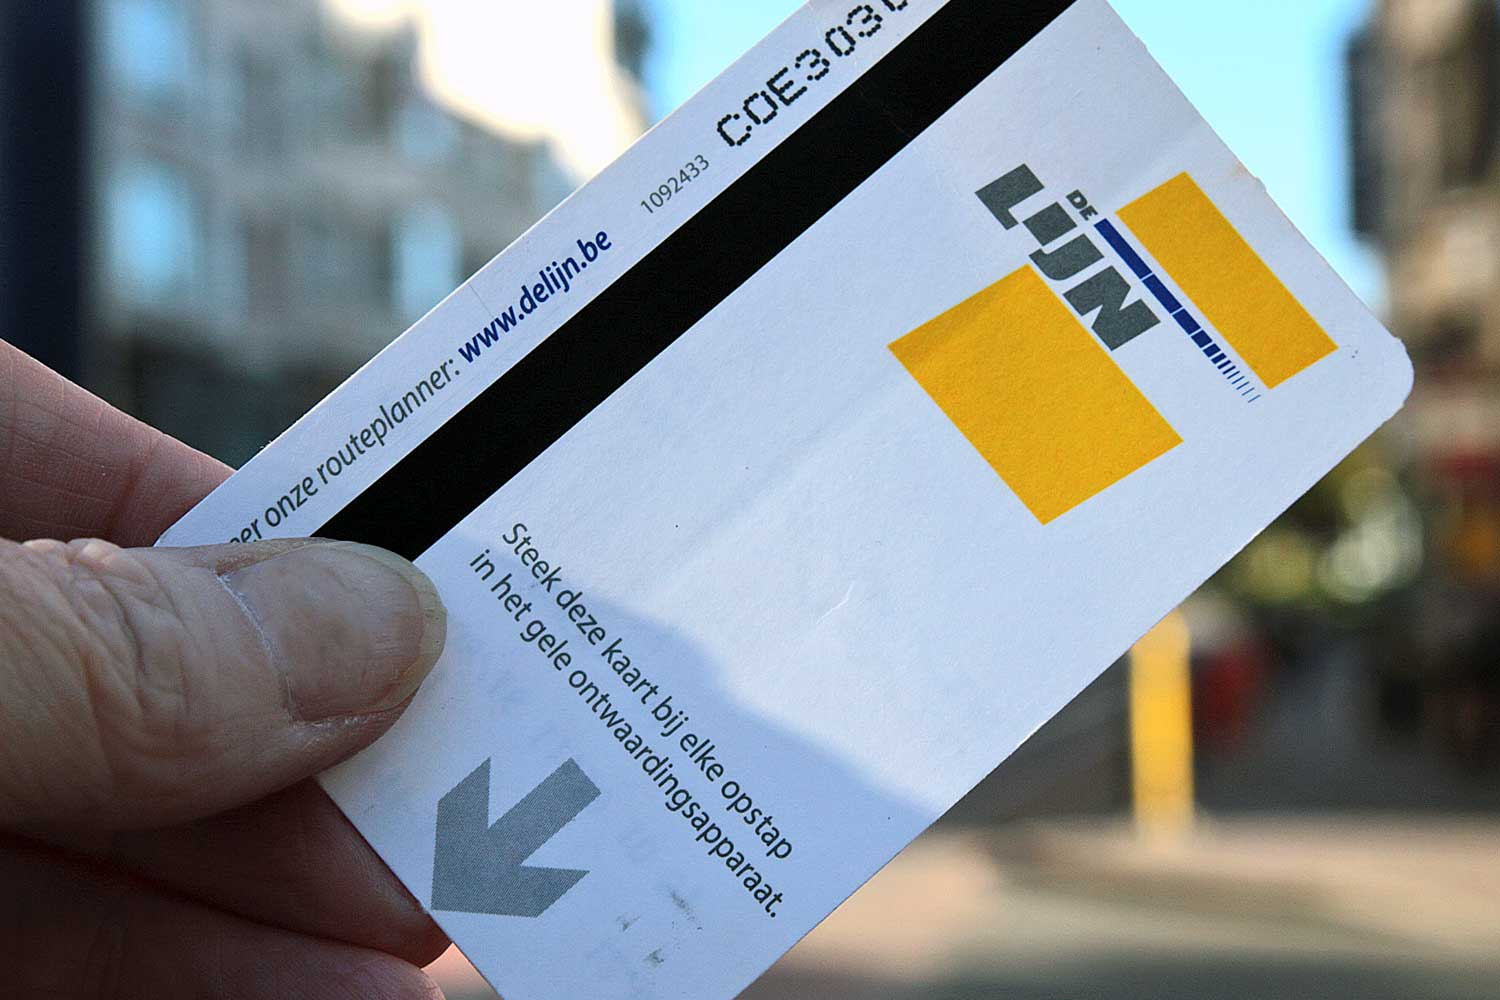 Ticket De Lijn